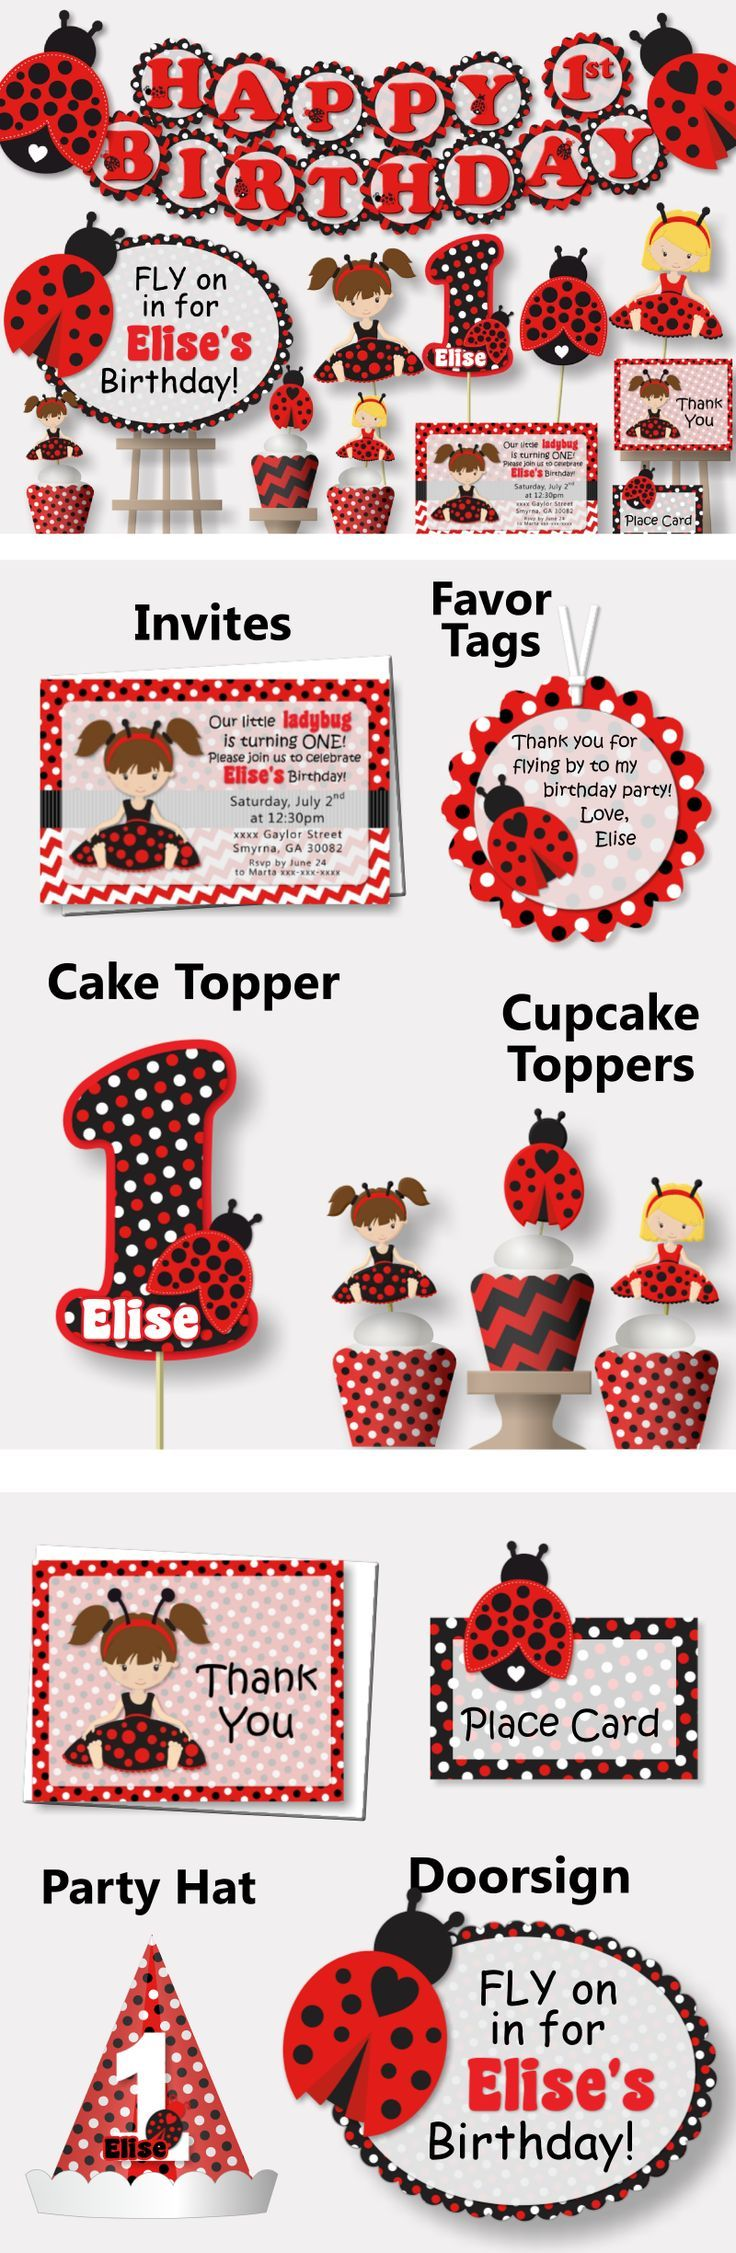 Ladybug 1st Birthday Party Theme Decorations  - Invitations, Cake Topper, Party Favors, Table Centerpiece, Banner, Invites #bcpaperdesigns #birthdayparty